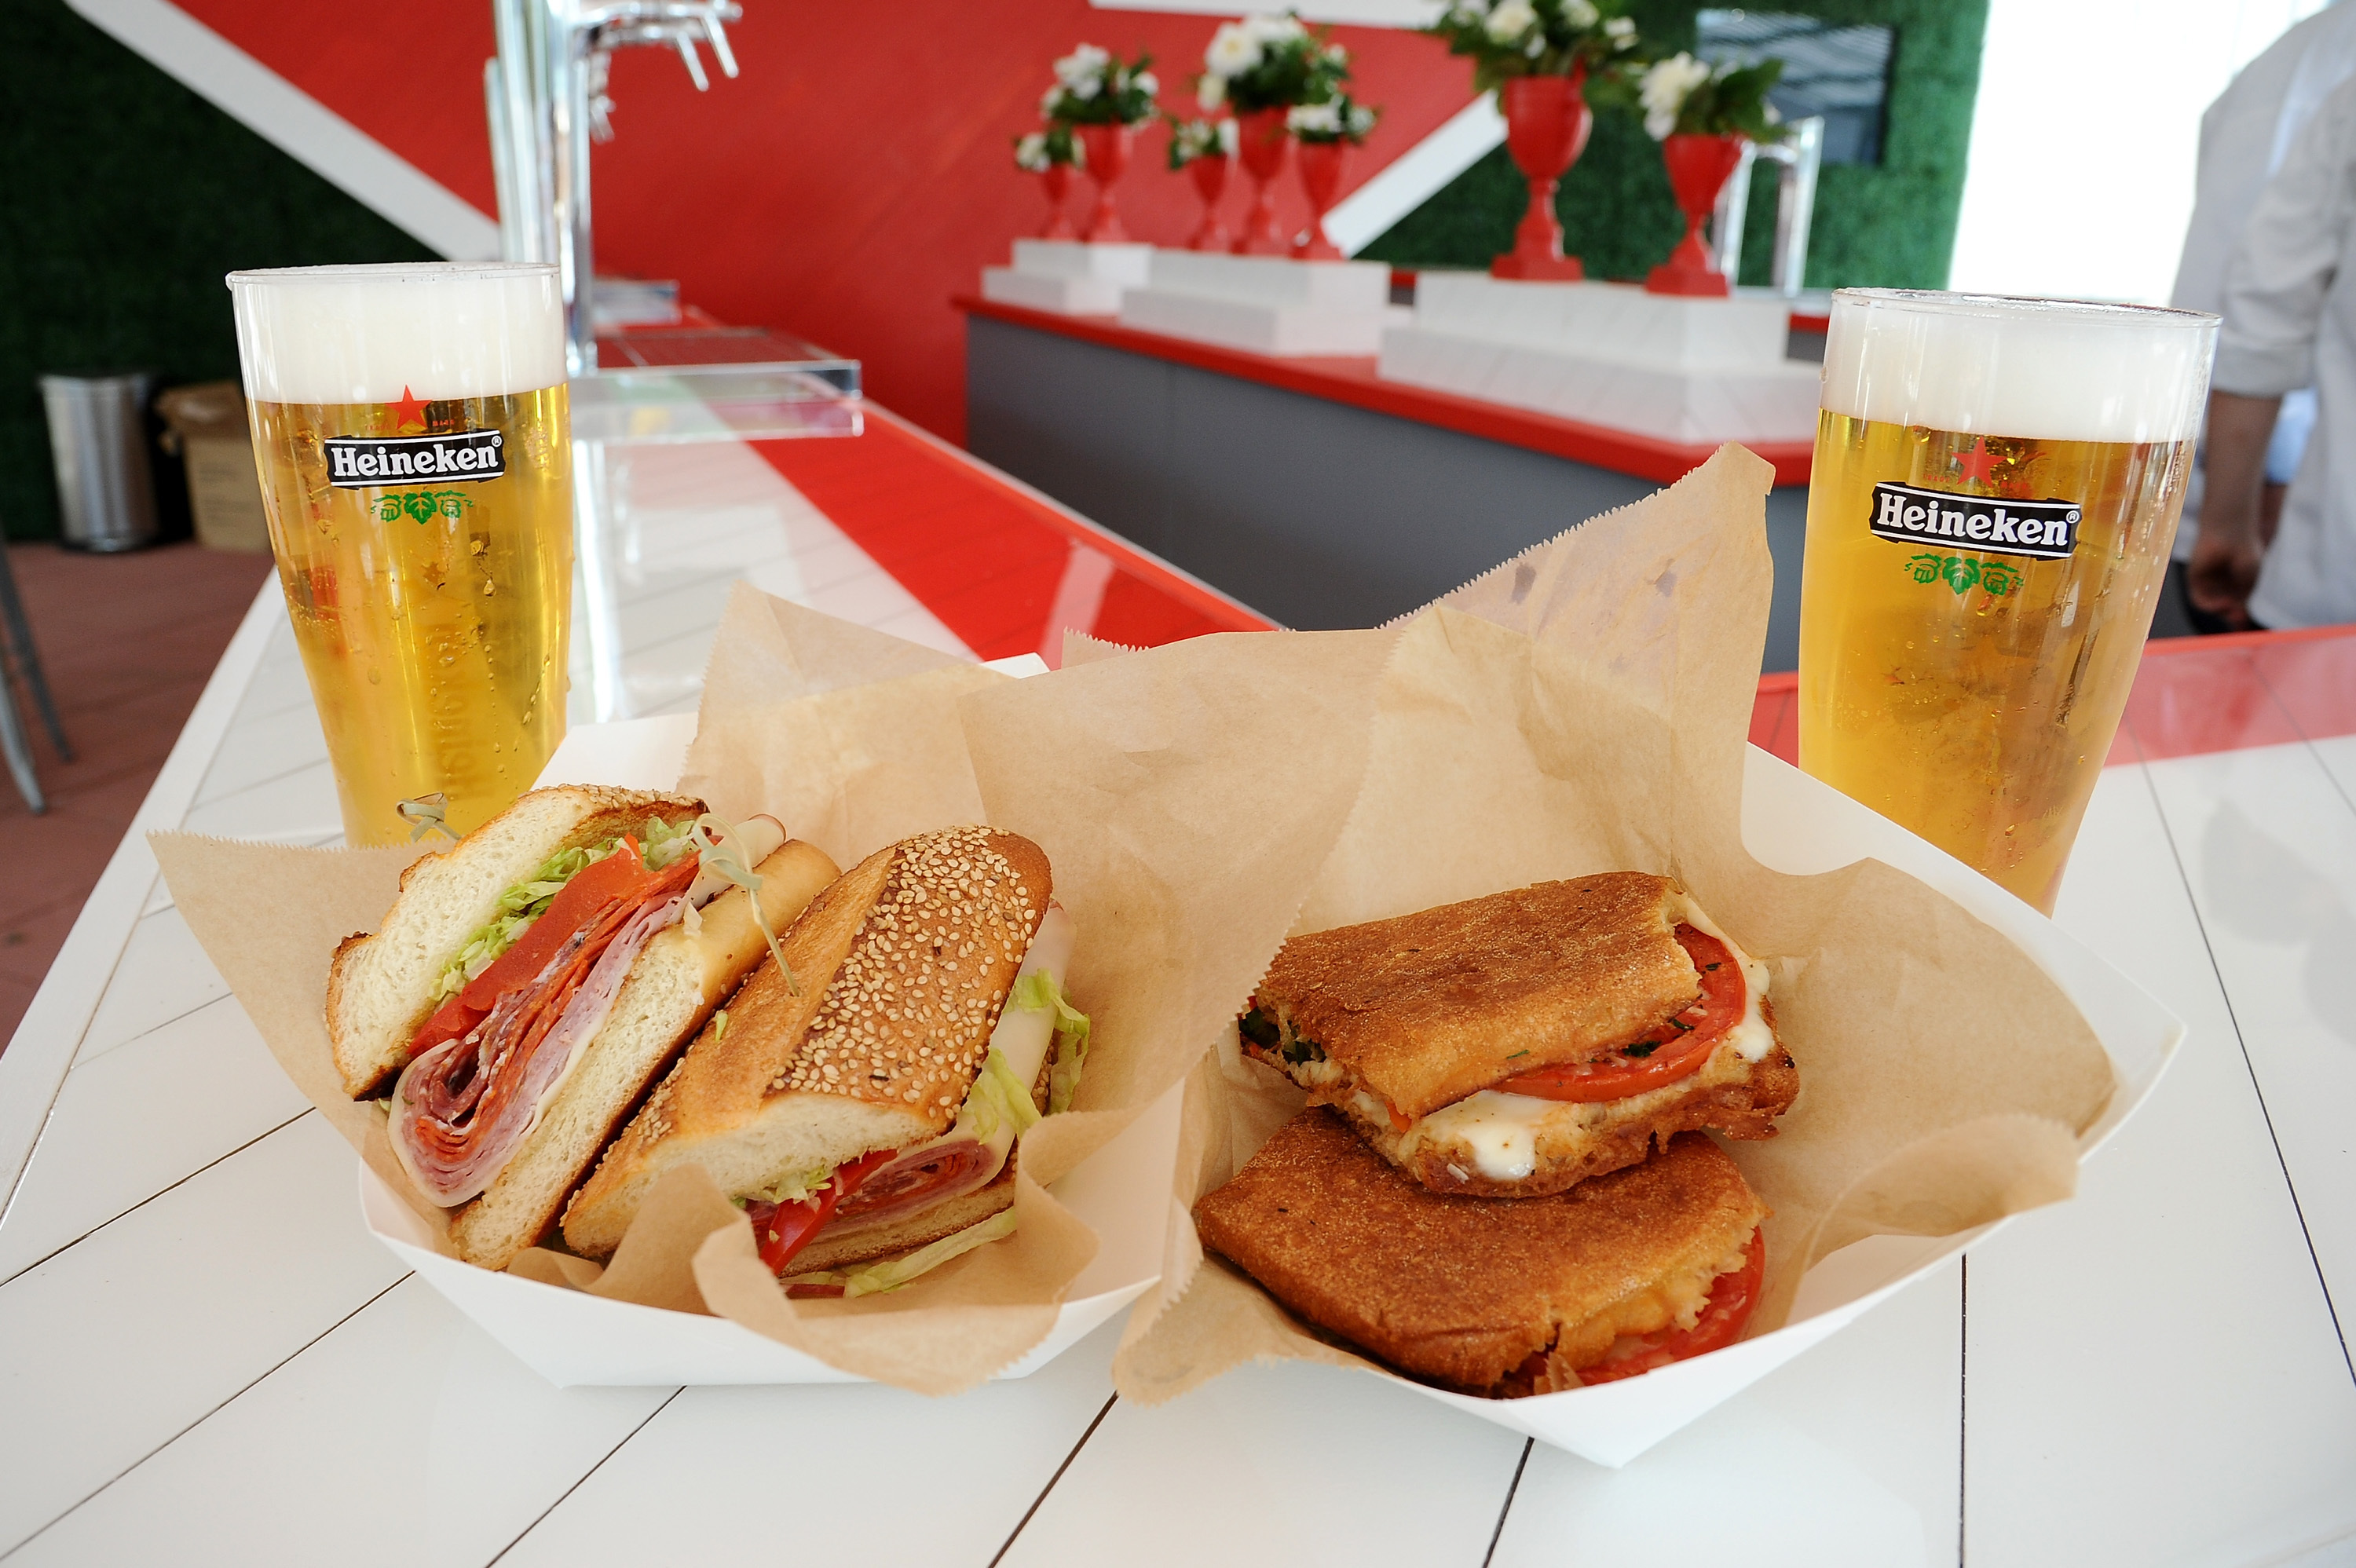 Parm's Mario Carbone will serve sandwiches at the US Open (2014)